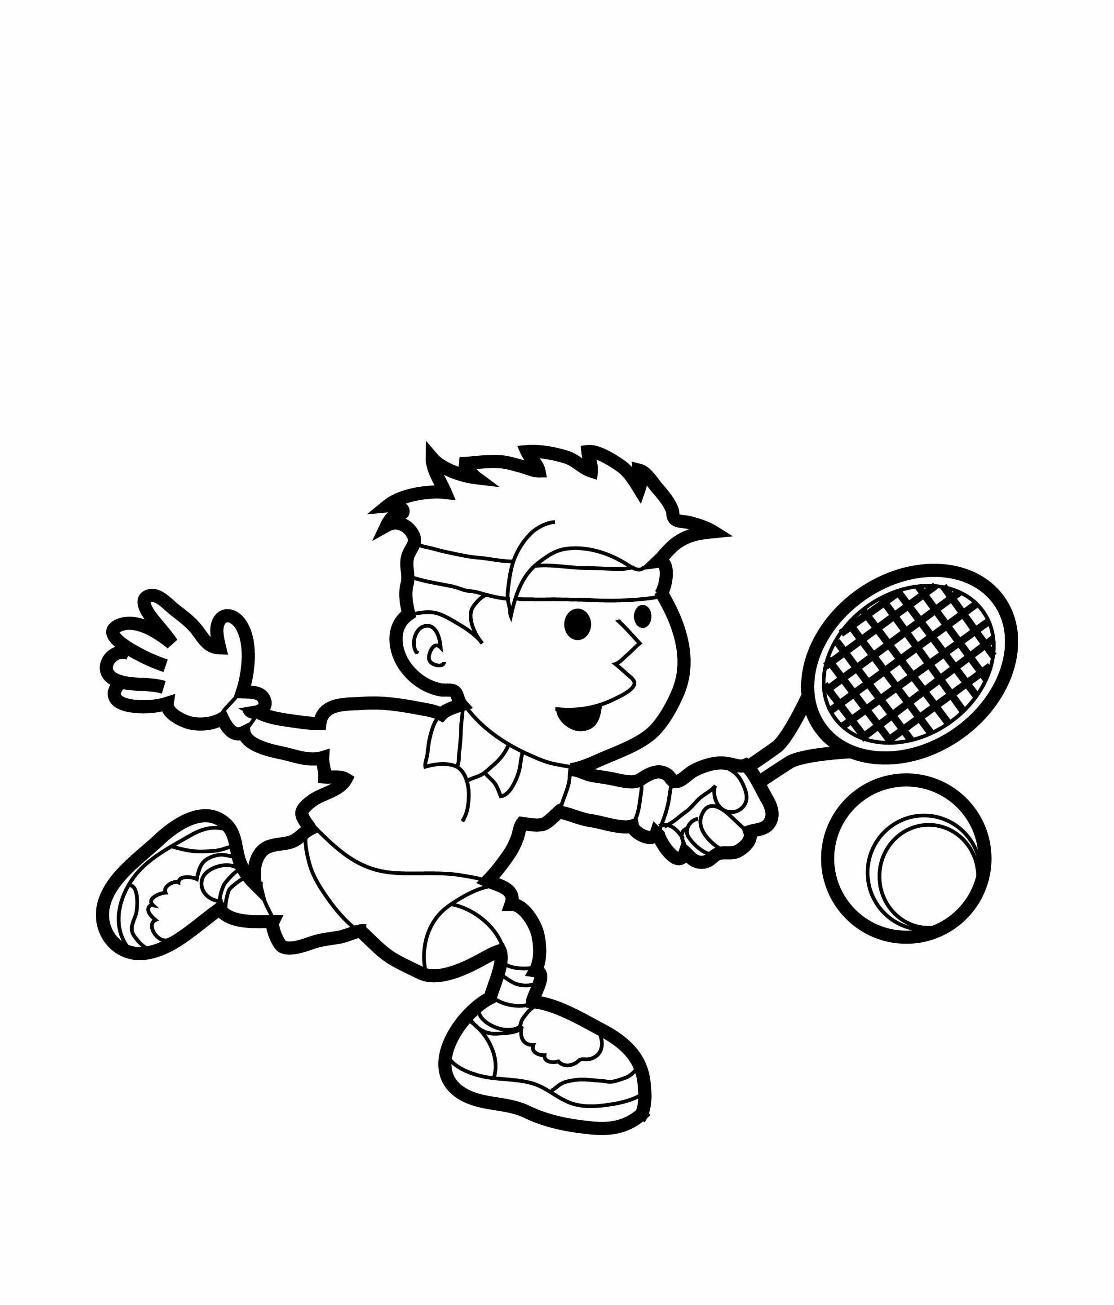 sport pictures to color sport coloring pages to download and print for free pictures to color sport